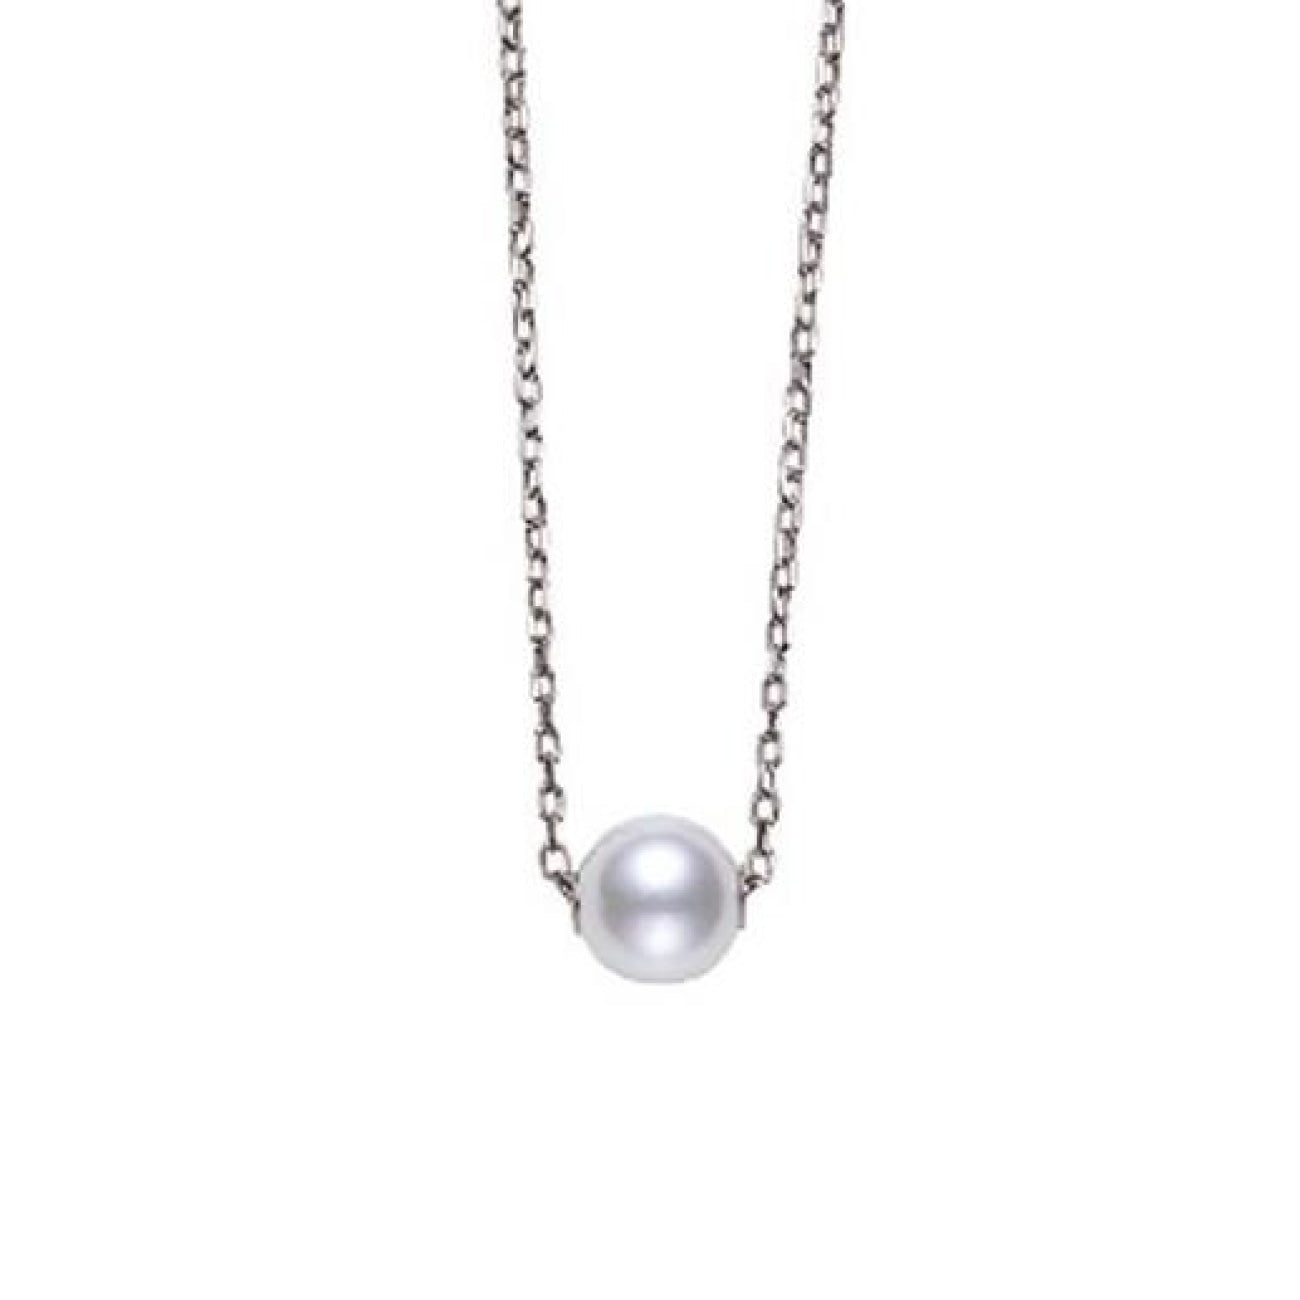 Mikimoto Jewelry - Akoya Single Cultured Pearl Pendant in 18K White Gold | Manfredi Jewels